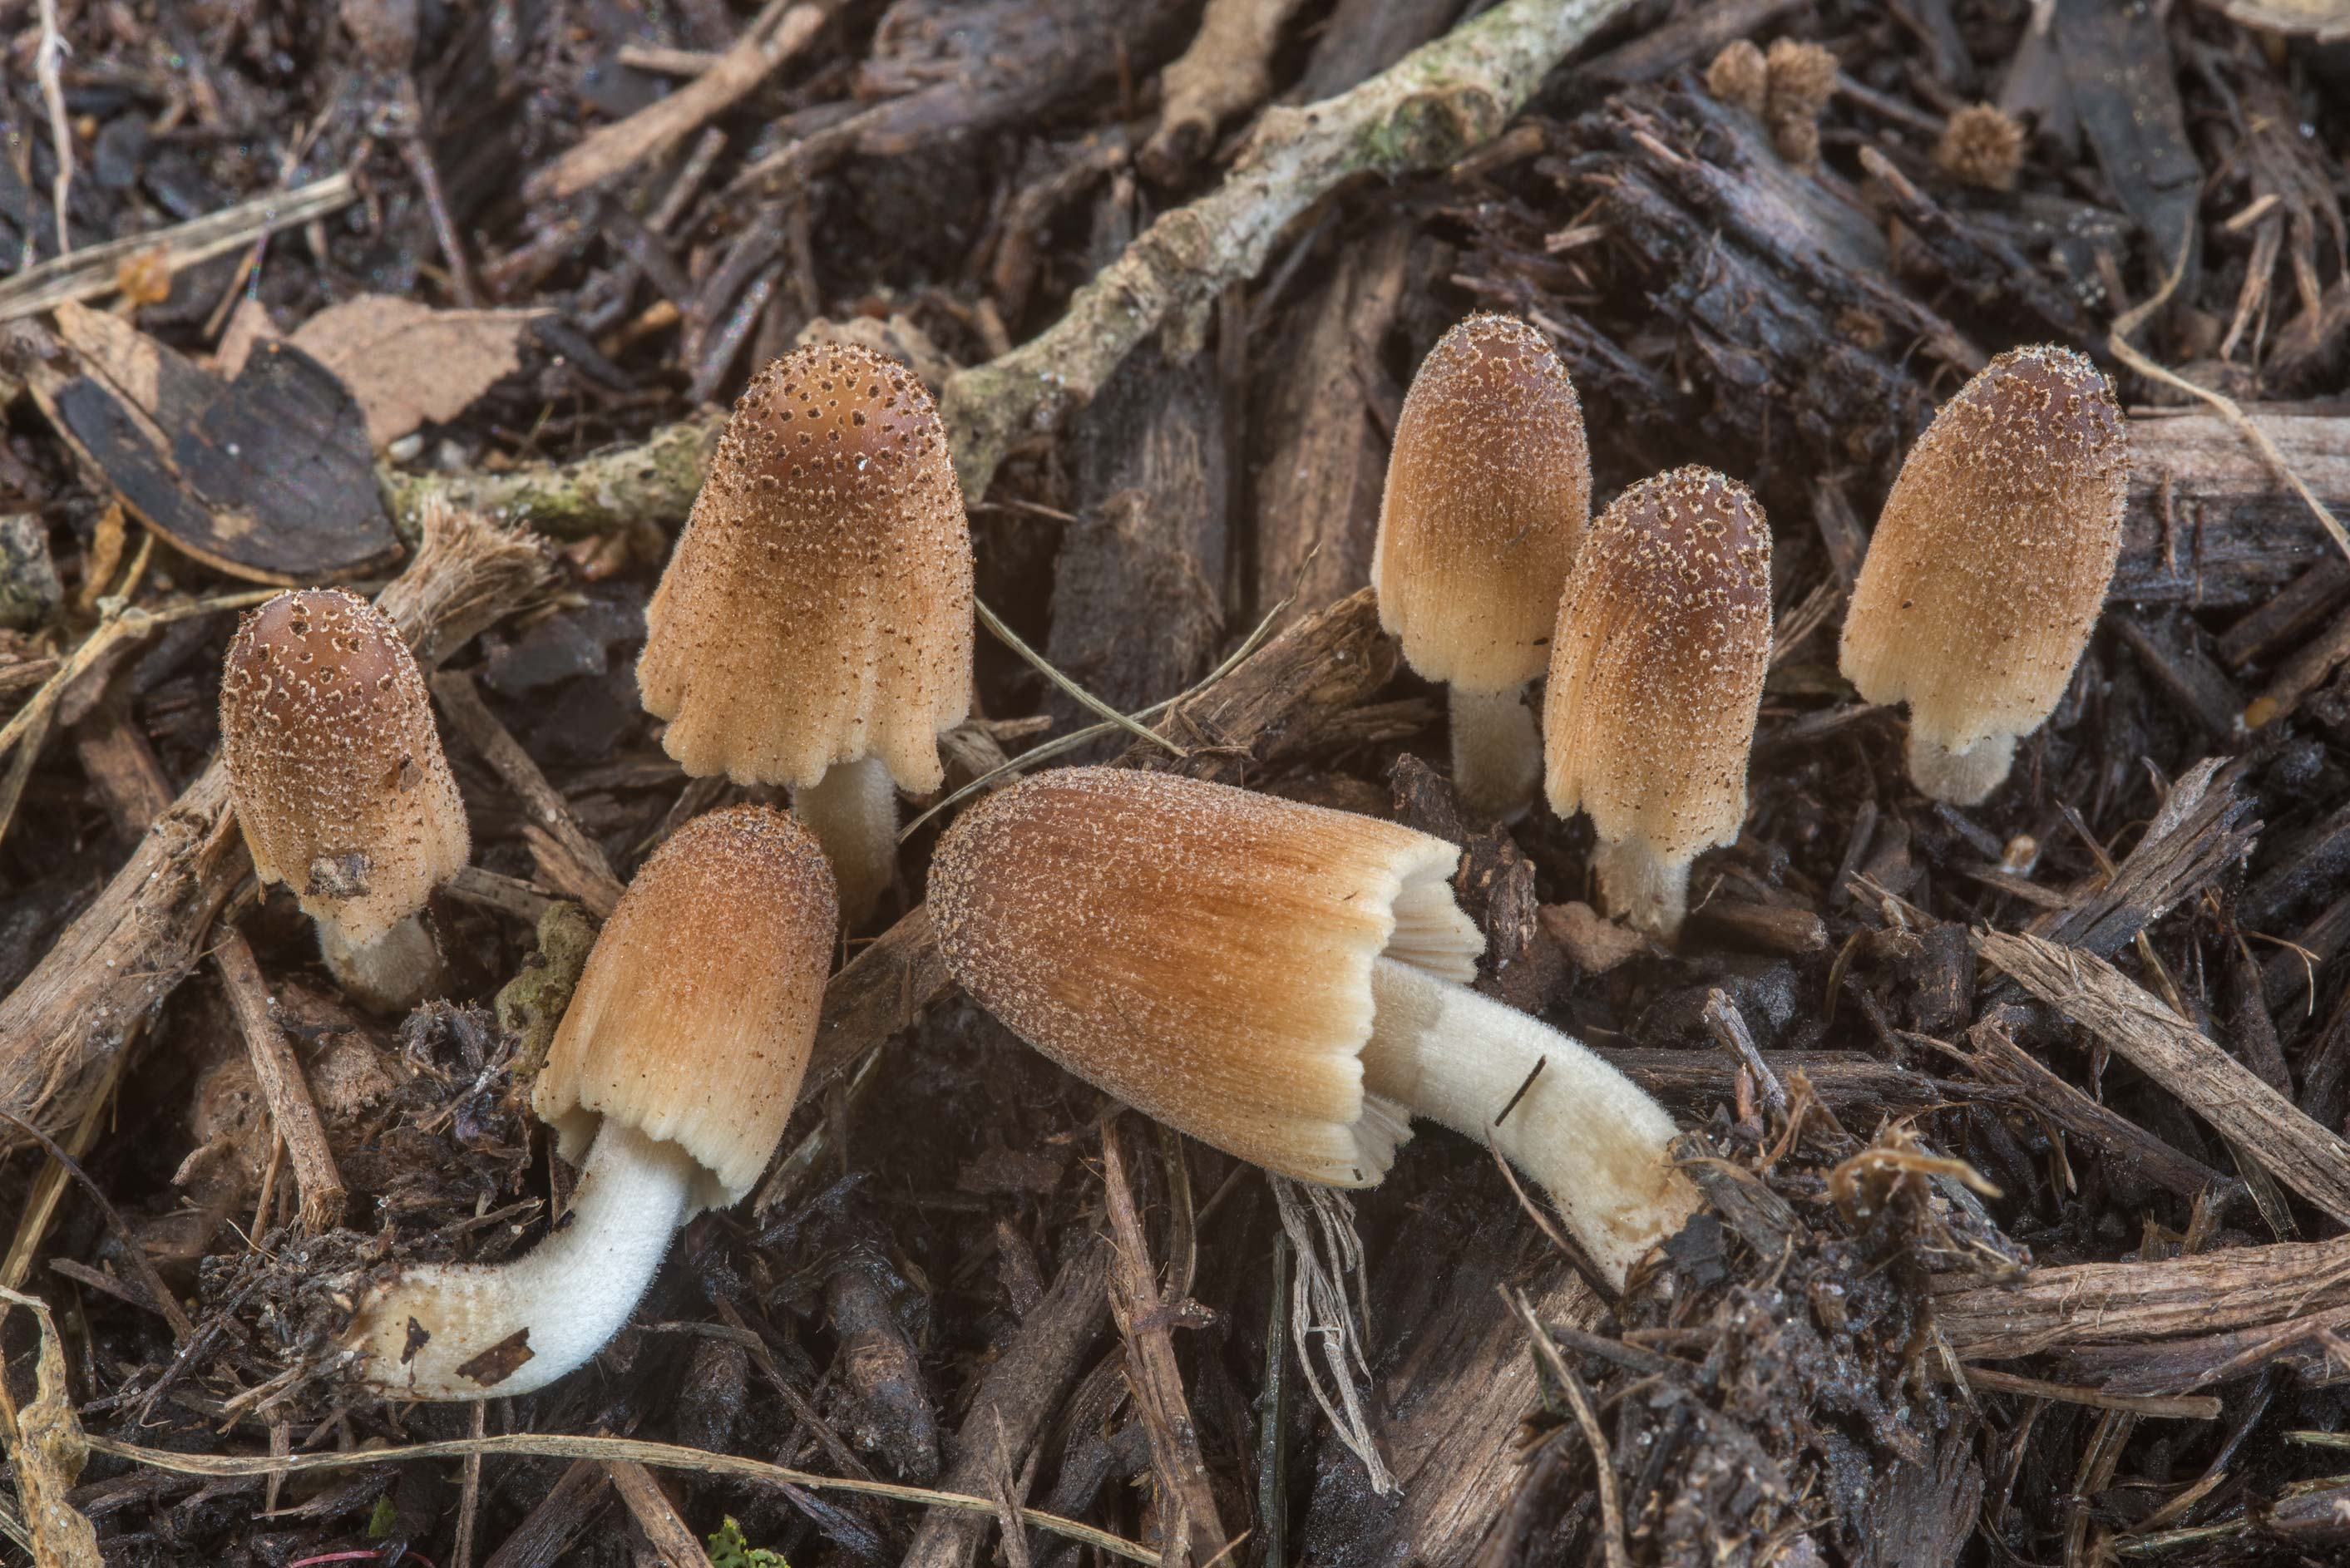 Inkcap mushrooms Coprinellus sect. Domestici on...Ashburn St.. College Station, Texas